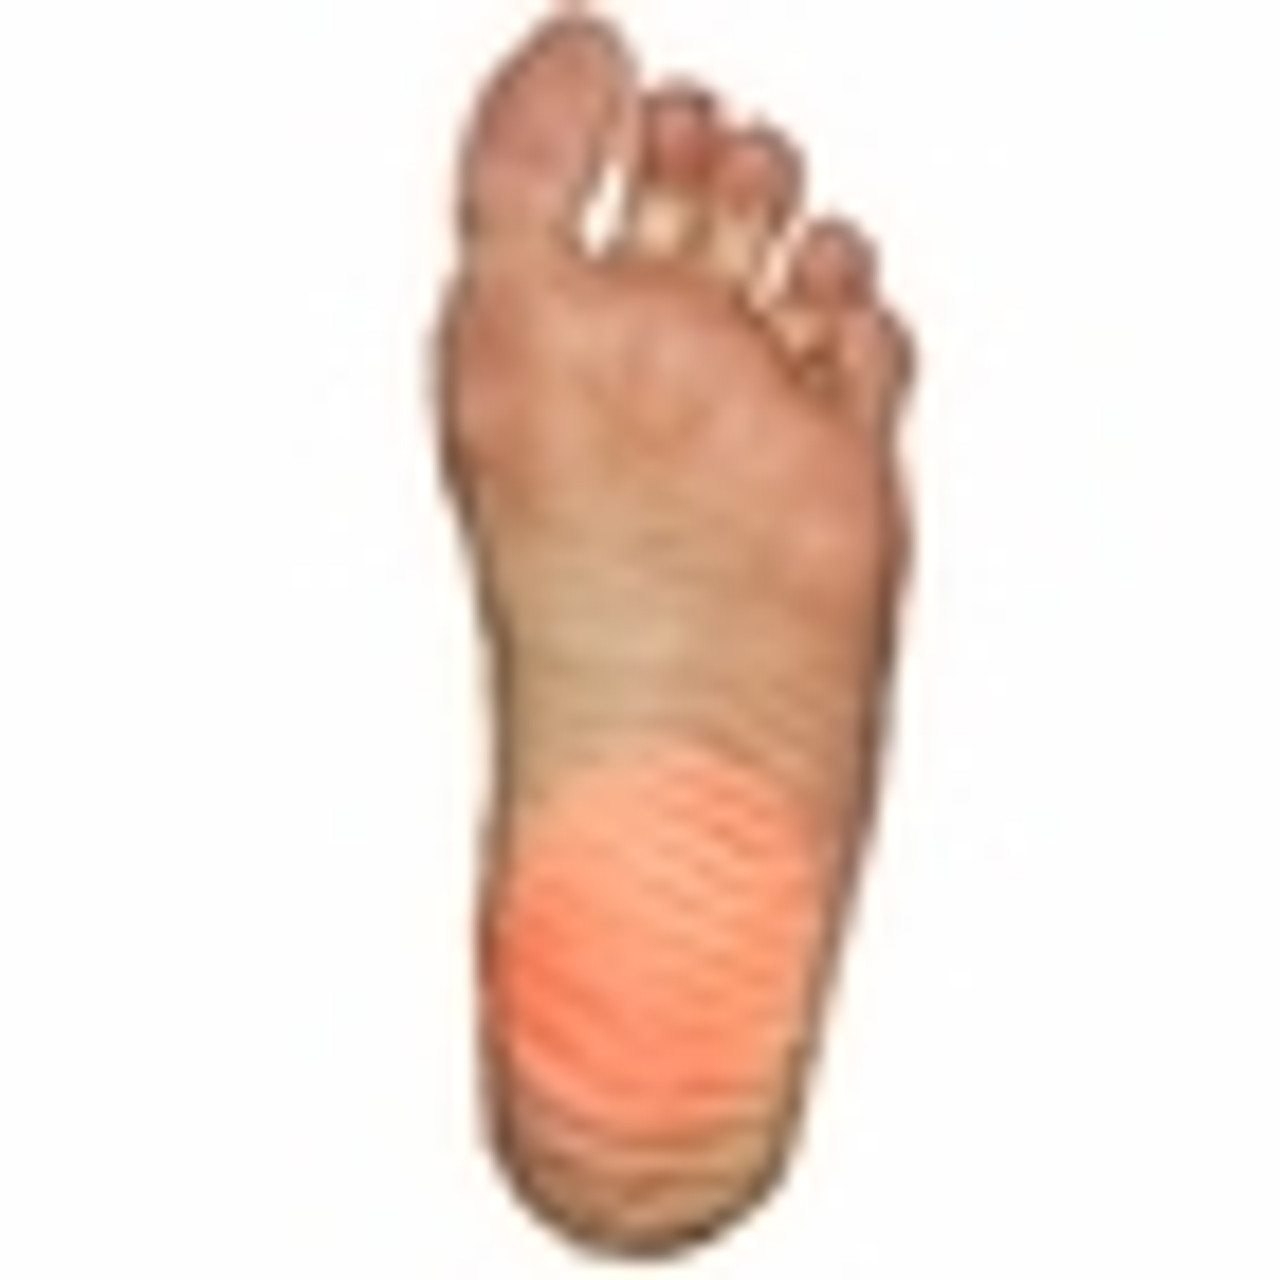 Podiatrist Recommended Shoes For Plantar Fasciitis